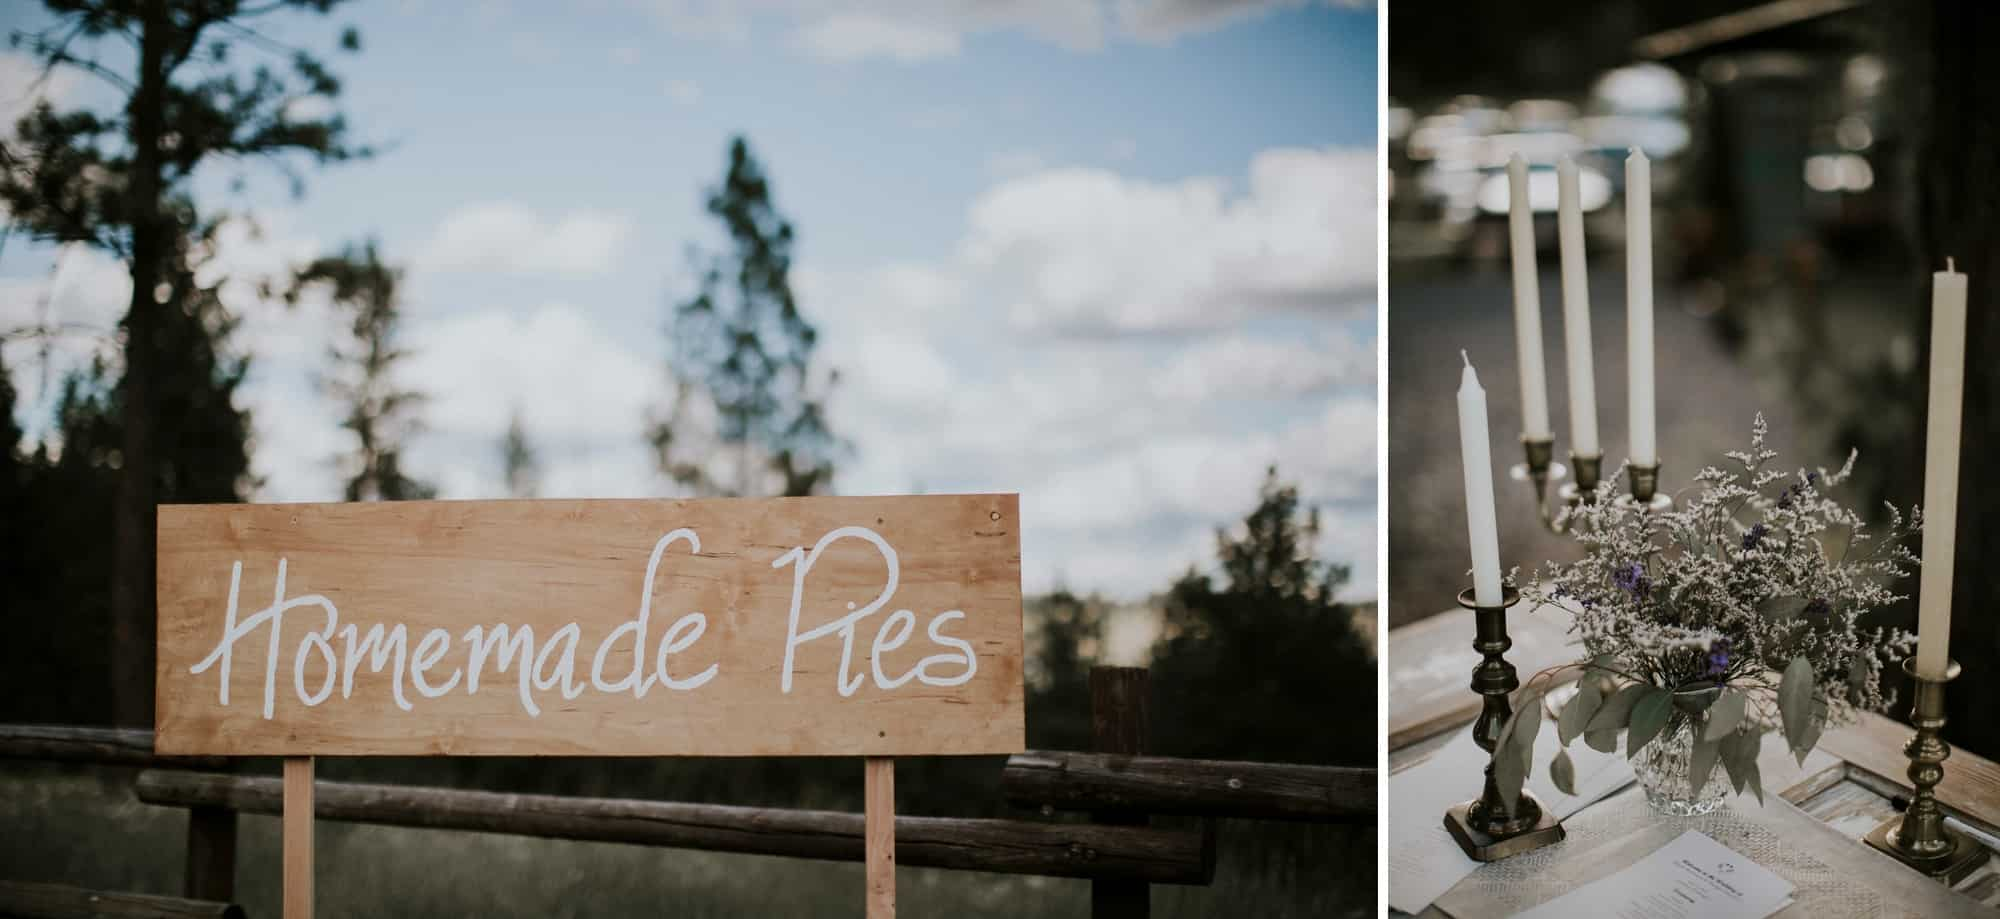 maisie-morgan-spokane-washington-pacific-northwest-backyard-wedding-00025